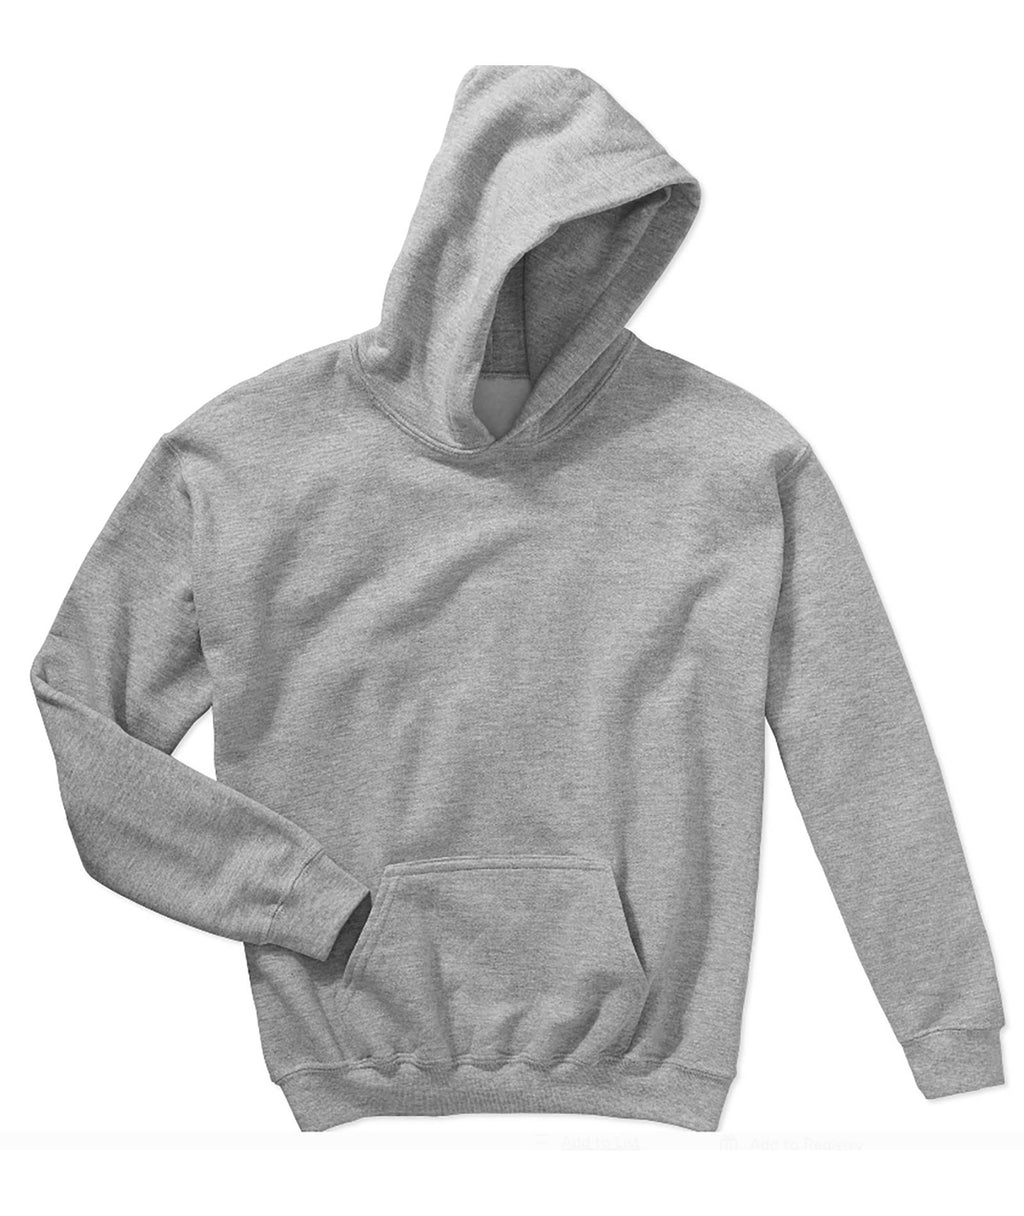 Gildan Youth Pullover Hoodie in White, Grey or Light Grey